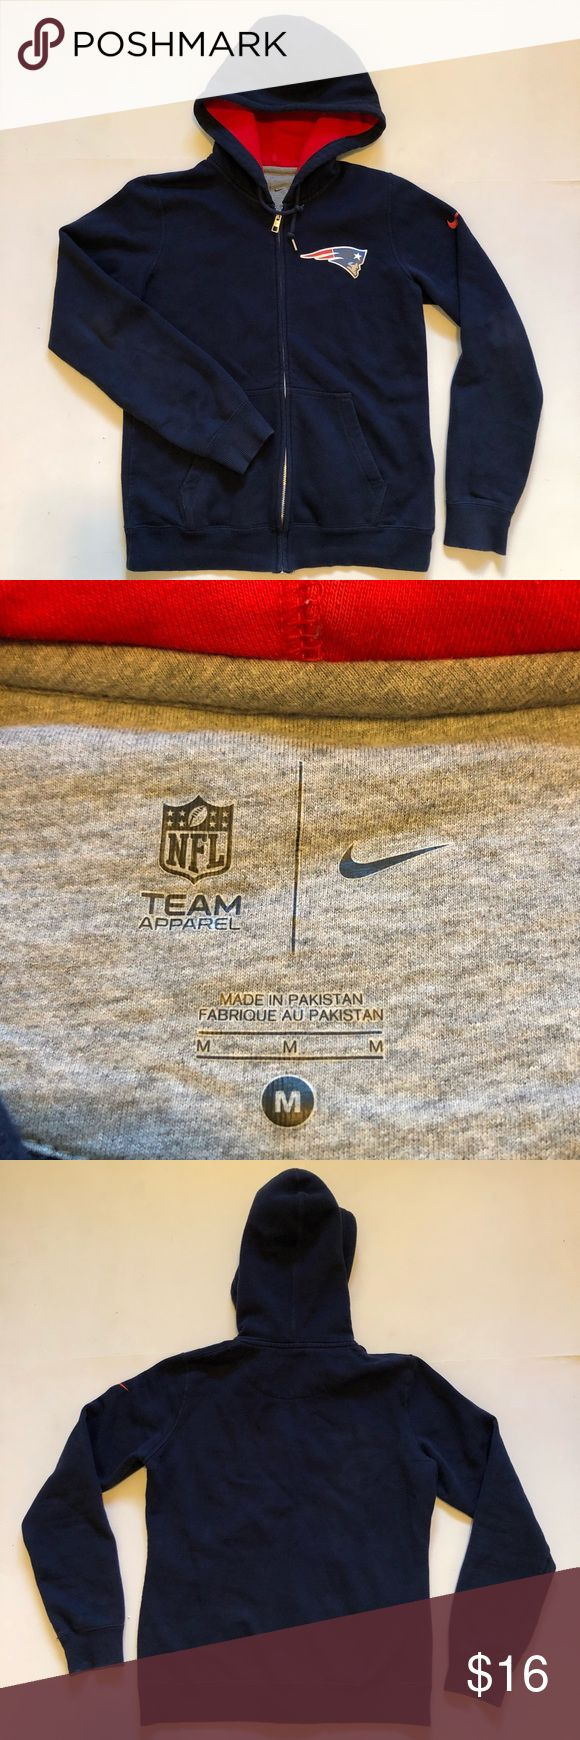 """nike new england patriots boys size medium size boys youth medium in good condition ( armpit to armpit 19.5"""" and shoulder to bottom 23"""") Nike Shirts & Tops Sweatshirts & Hoodies"""